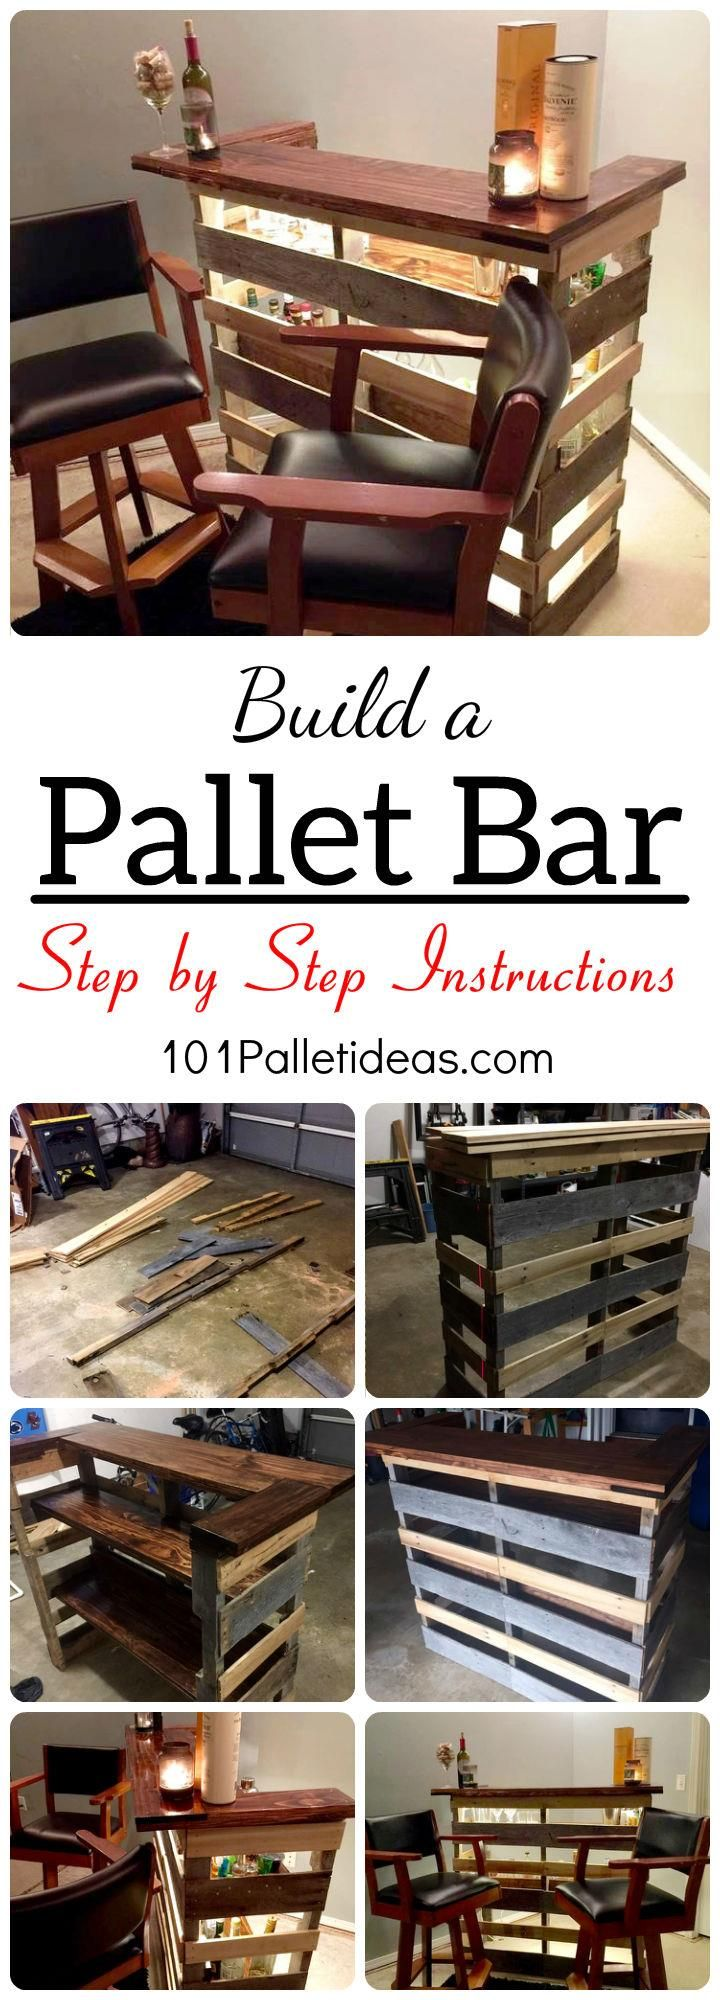 Pallet bar step by step instructions 101 pallet ideas for Diy pallet projects with instructions